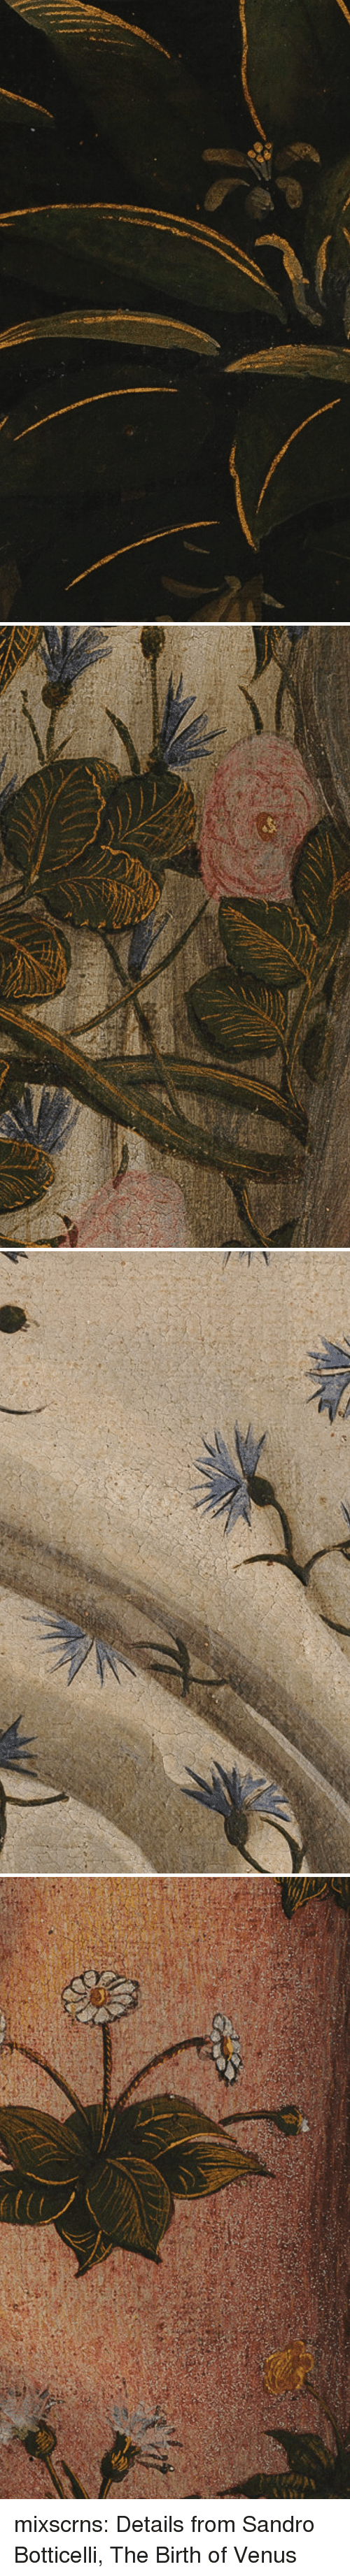 Tumblr, Blog, and Venus: mixscrns: Details from Sandro Botticelli, The Birth of Venus